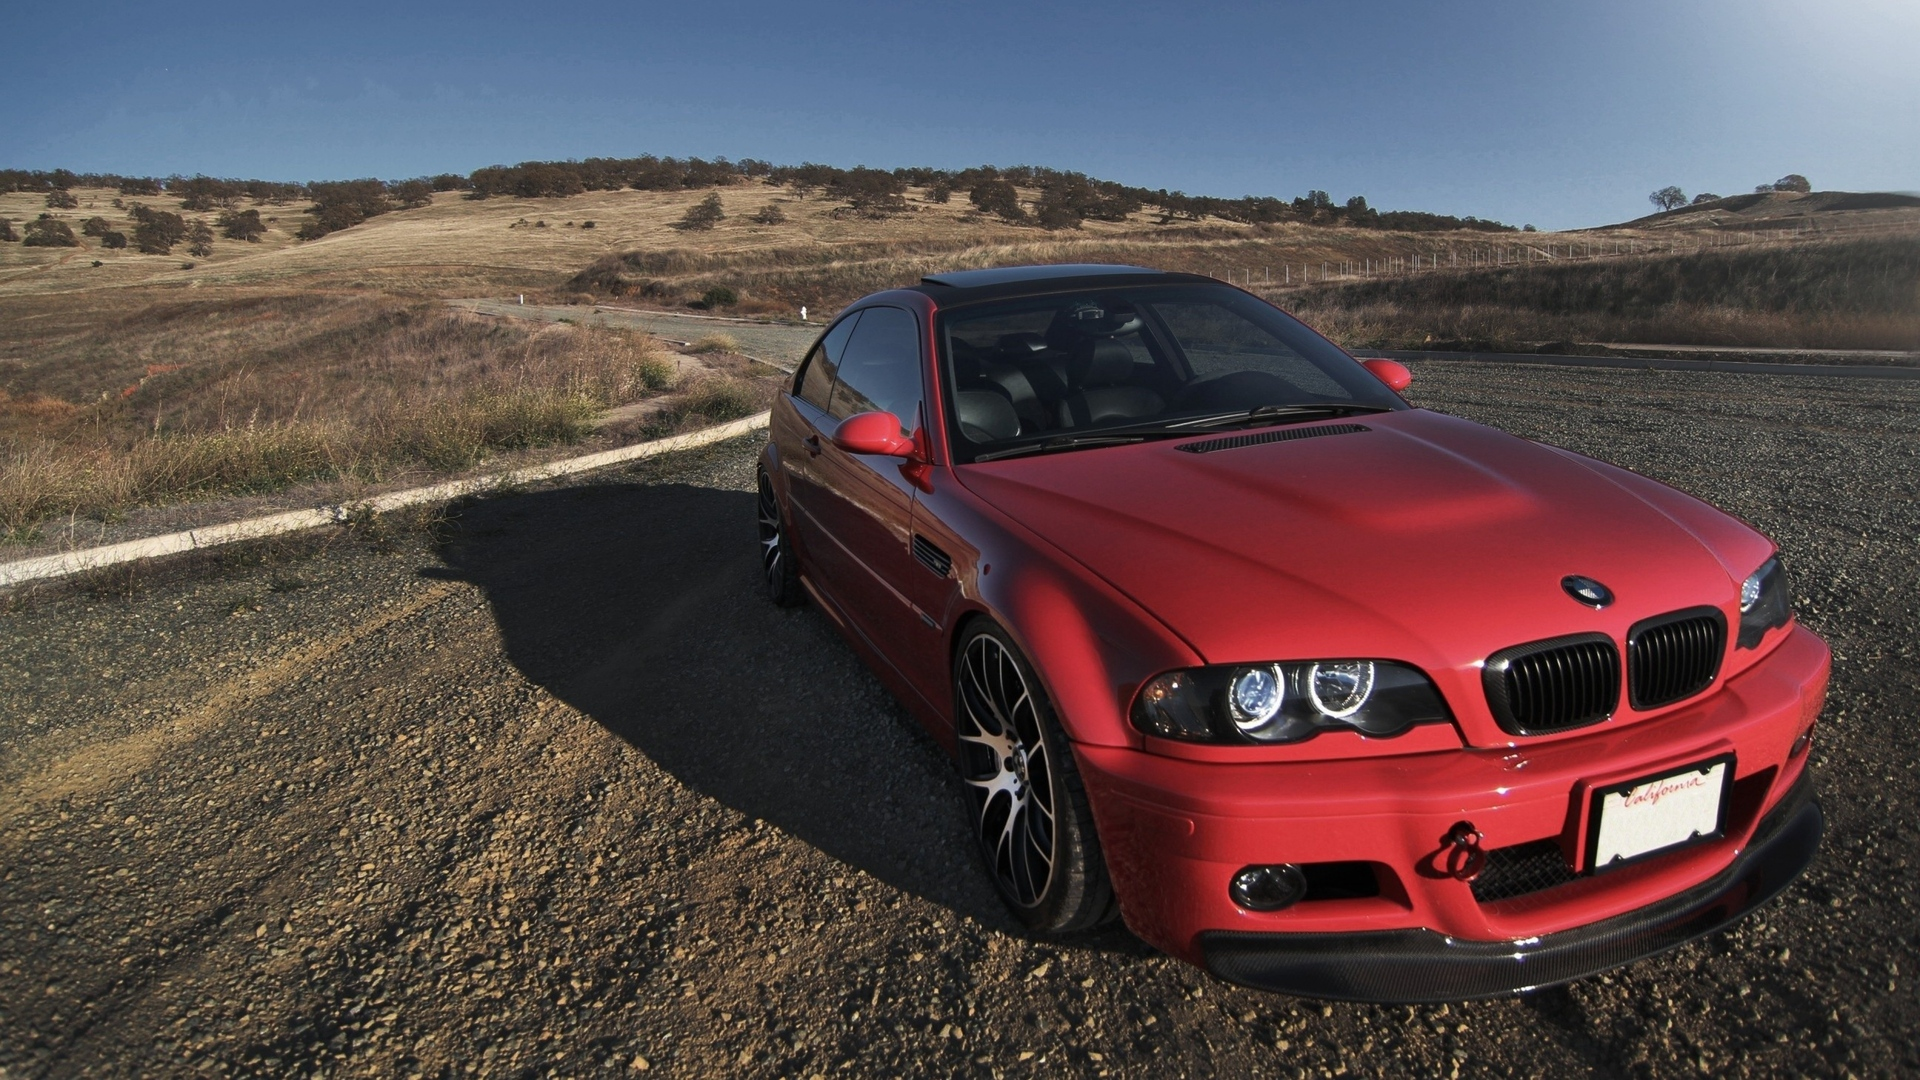 1920x1080 Bmw E46 Red Laptop Full Hd 1080p Hd 4k Wallpapers Images